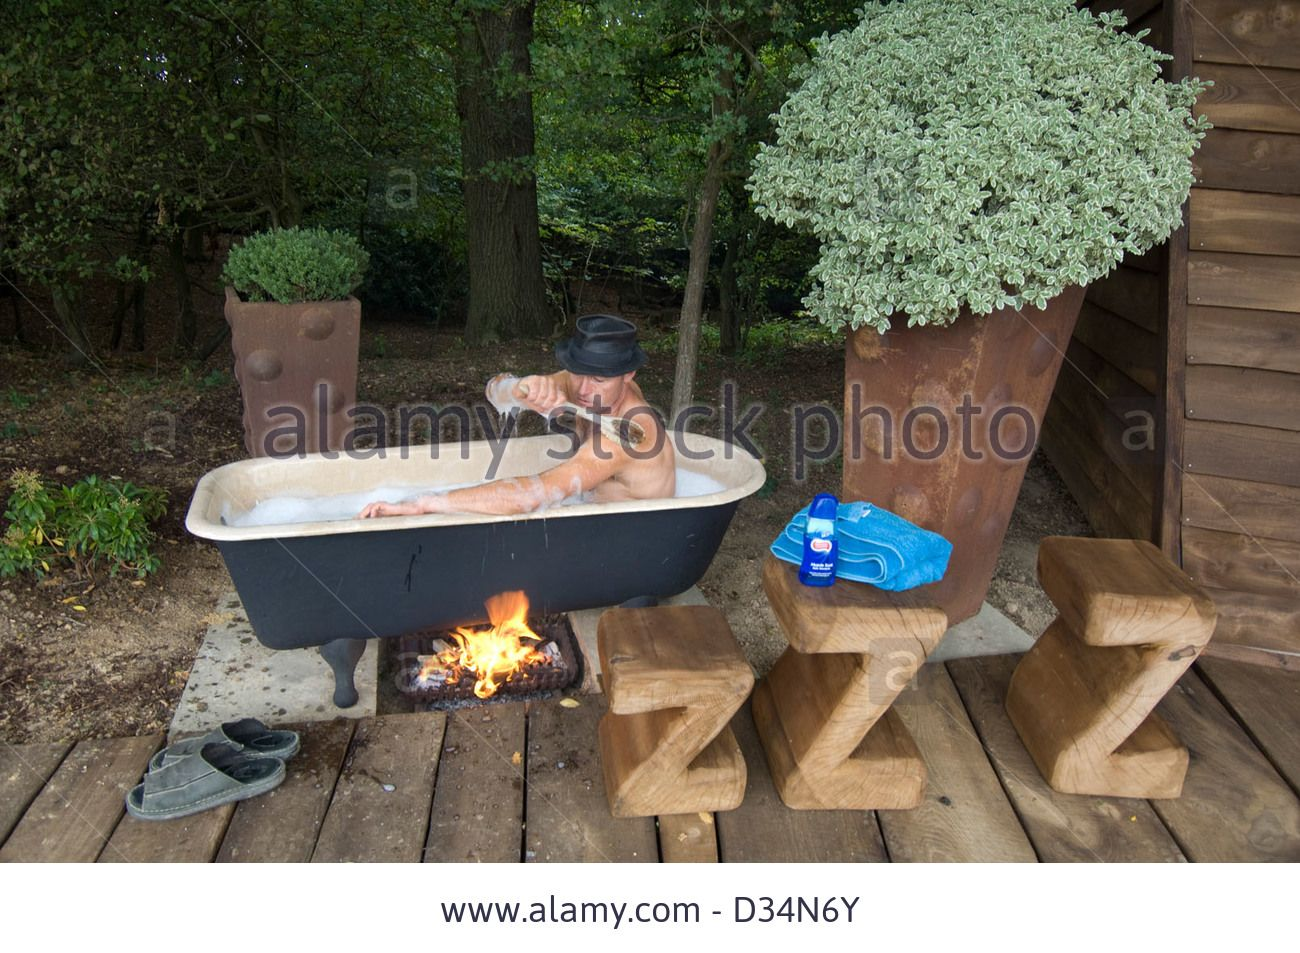 fire heated bath - Google Search | Backyard Hot Tub | Pinterest ...